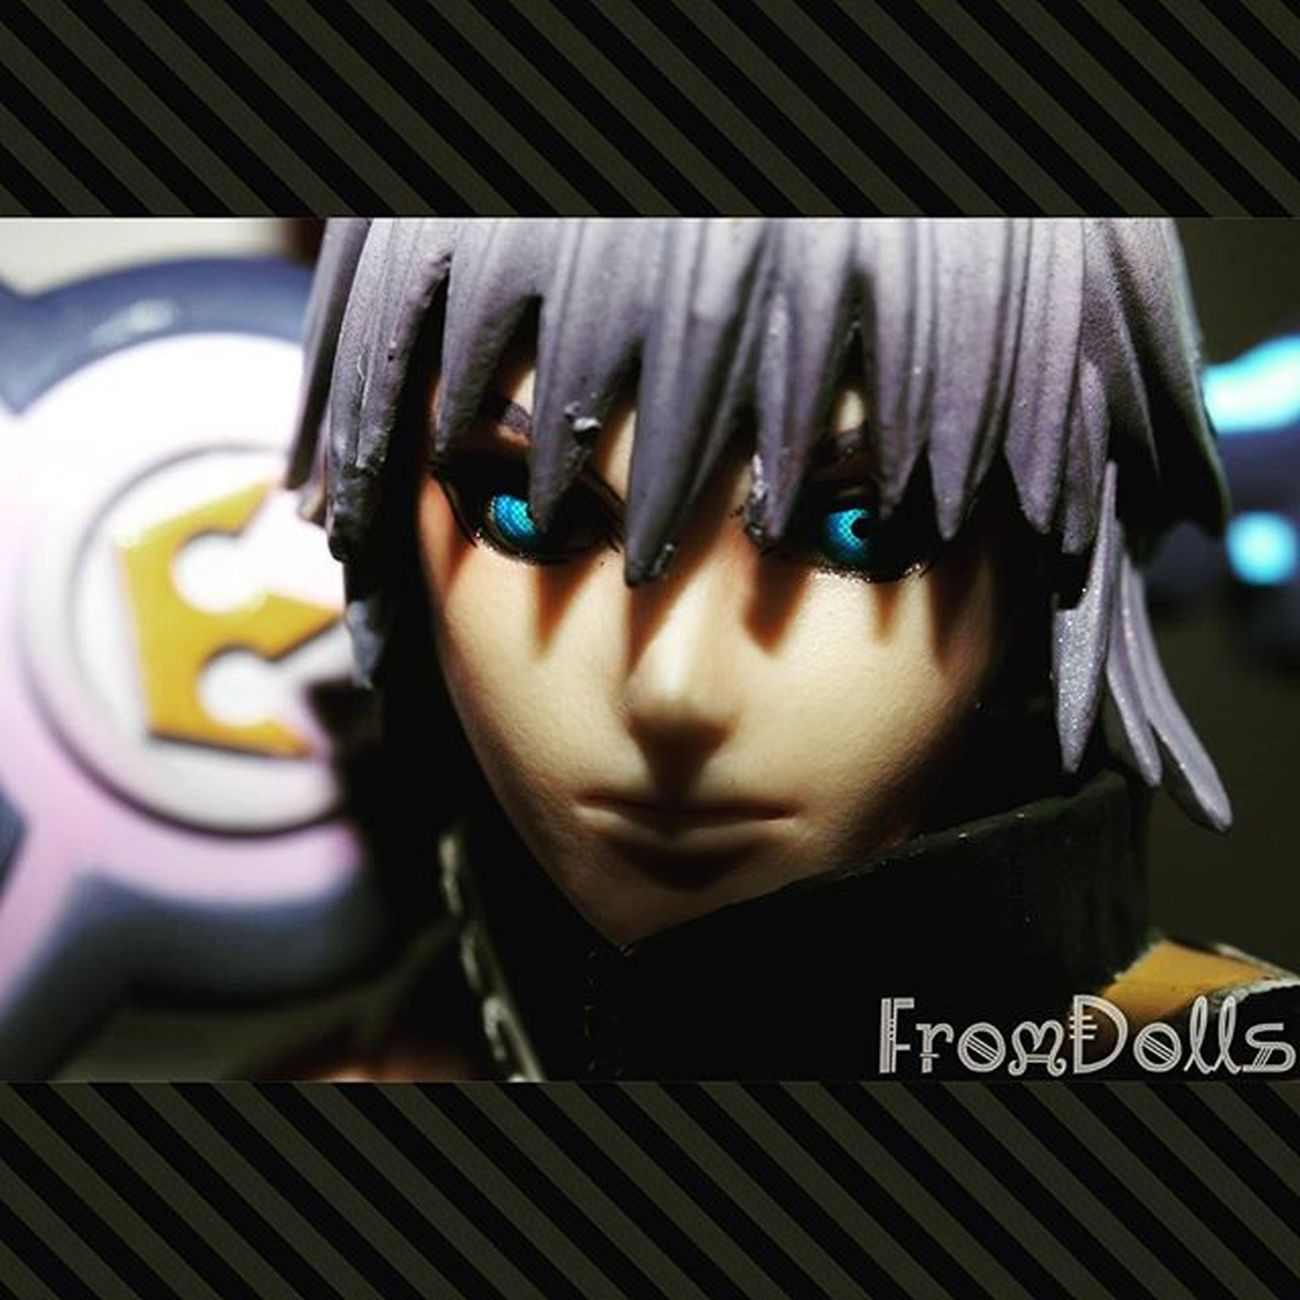 That eyes... Fromdolls Kingdomhearts Kingdomhearts3d Riku Playarts Figure Figura Action Anime Manga Videogames Merchandising Keyblade